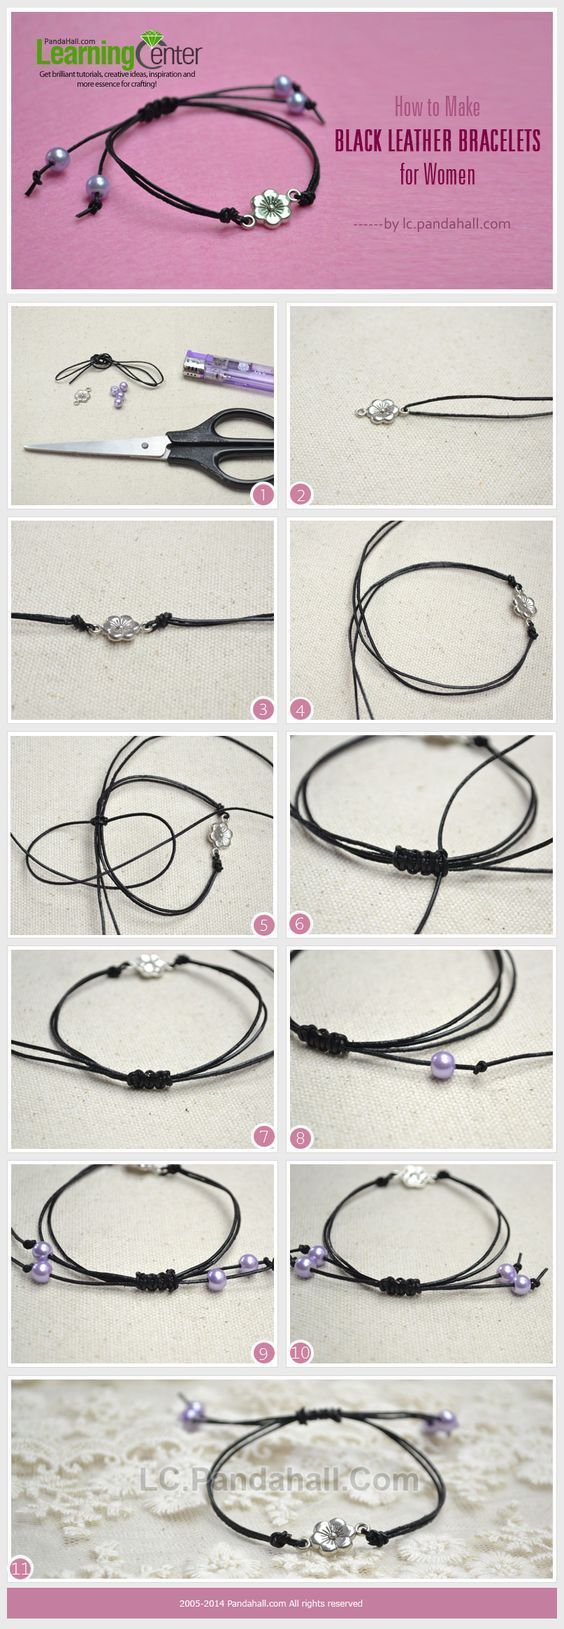 Leather Bracelet- sliding Knot closure